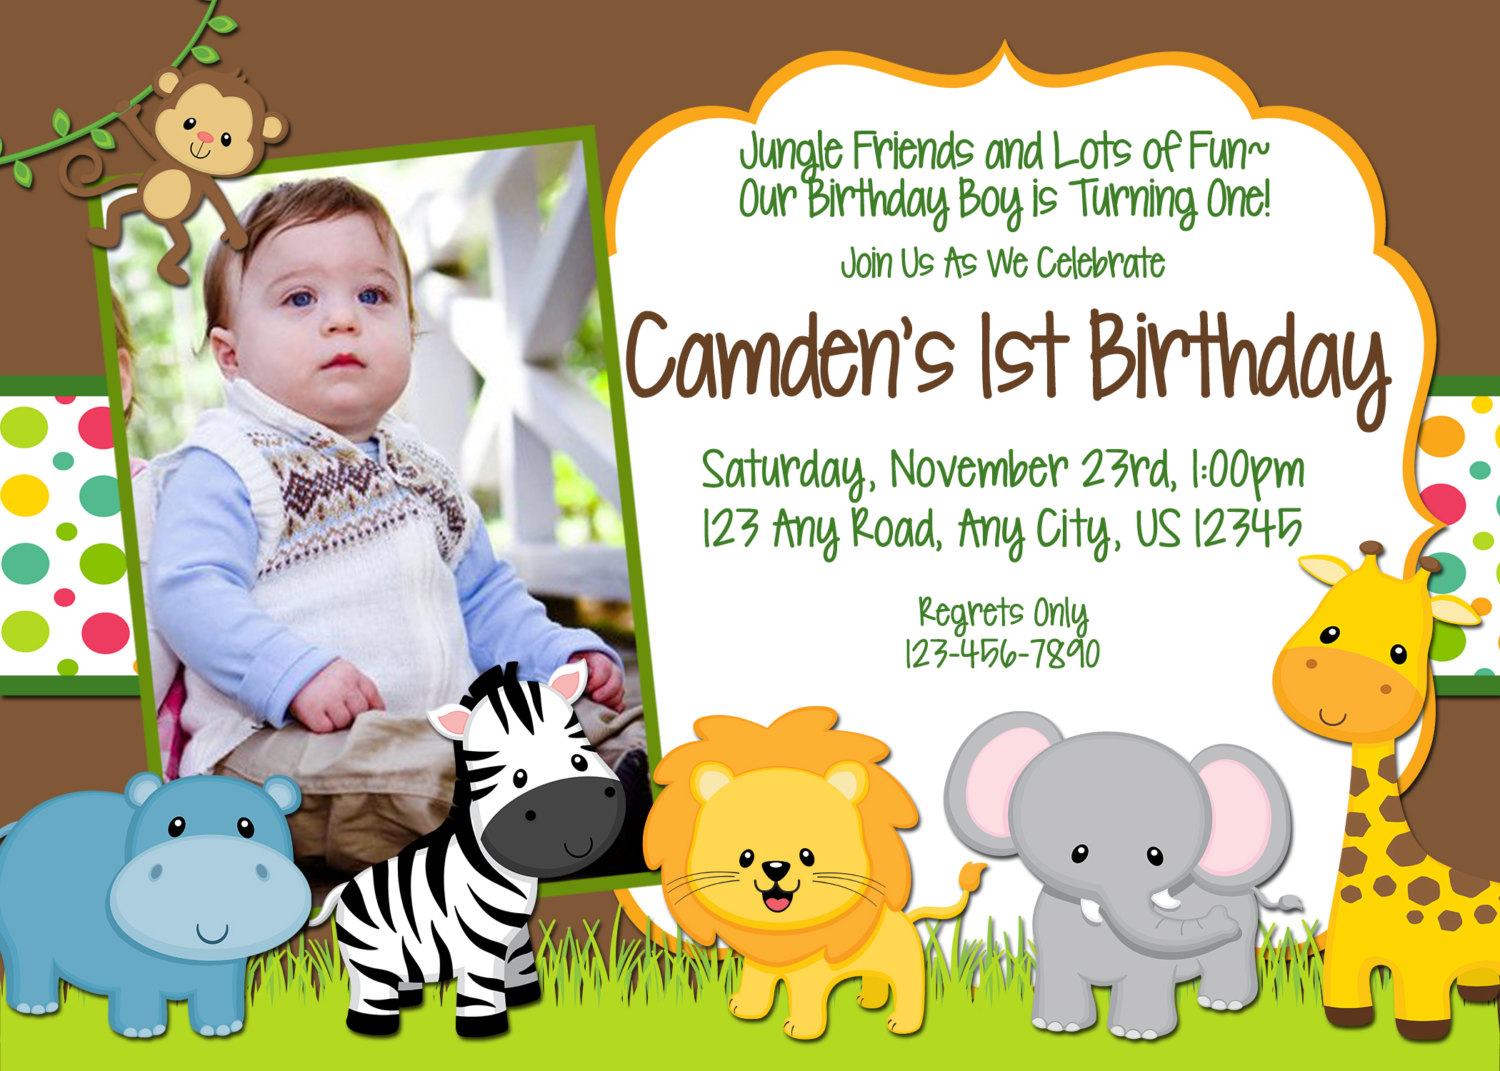 jungle birthday invitation wording ; jungle-birthday-invitations-with-decorative-Birthday-Invitation-Templates-as-a-result-of-an-application-using-a-felicitous-concept-4